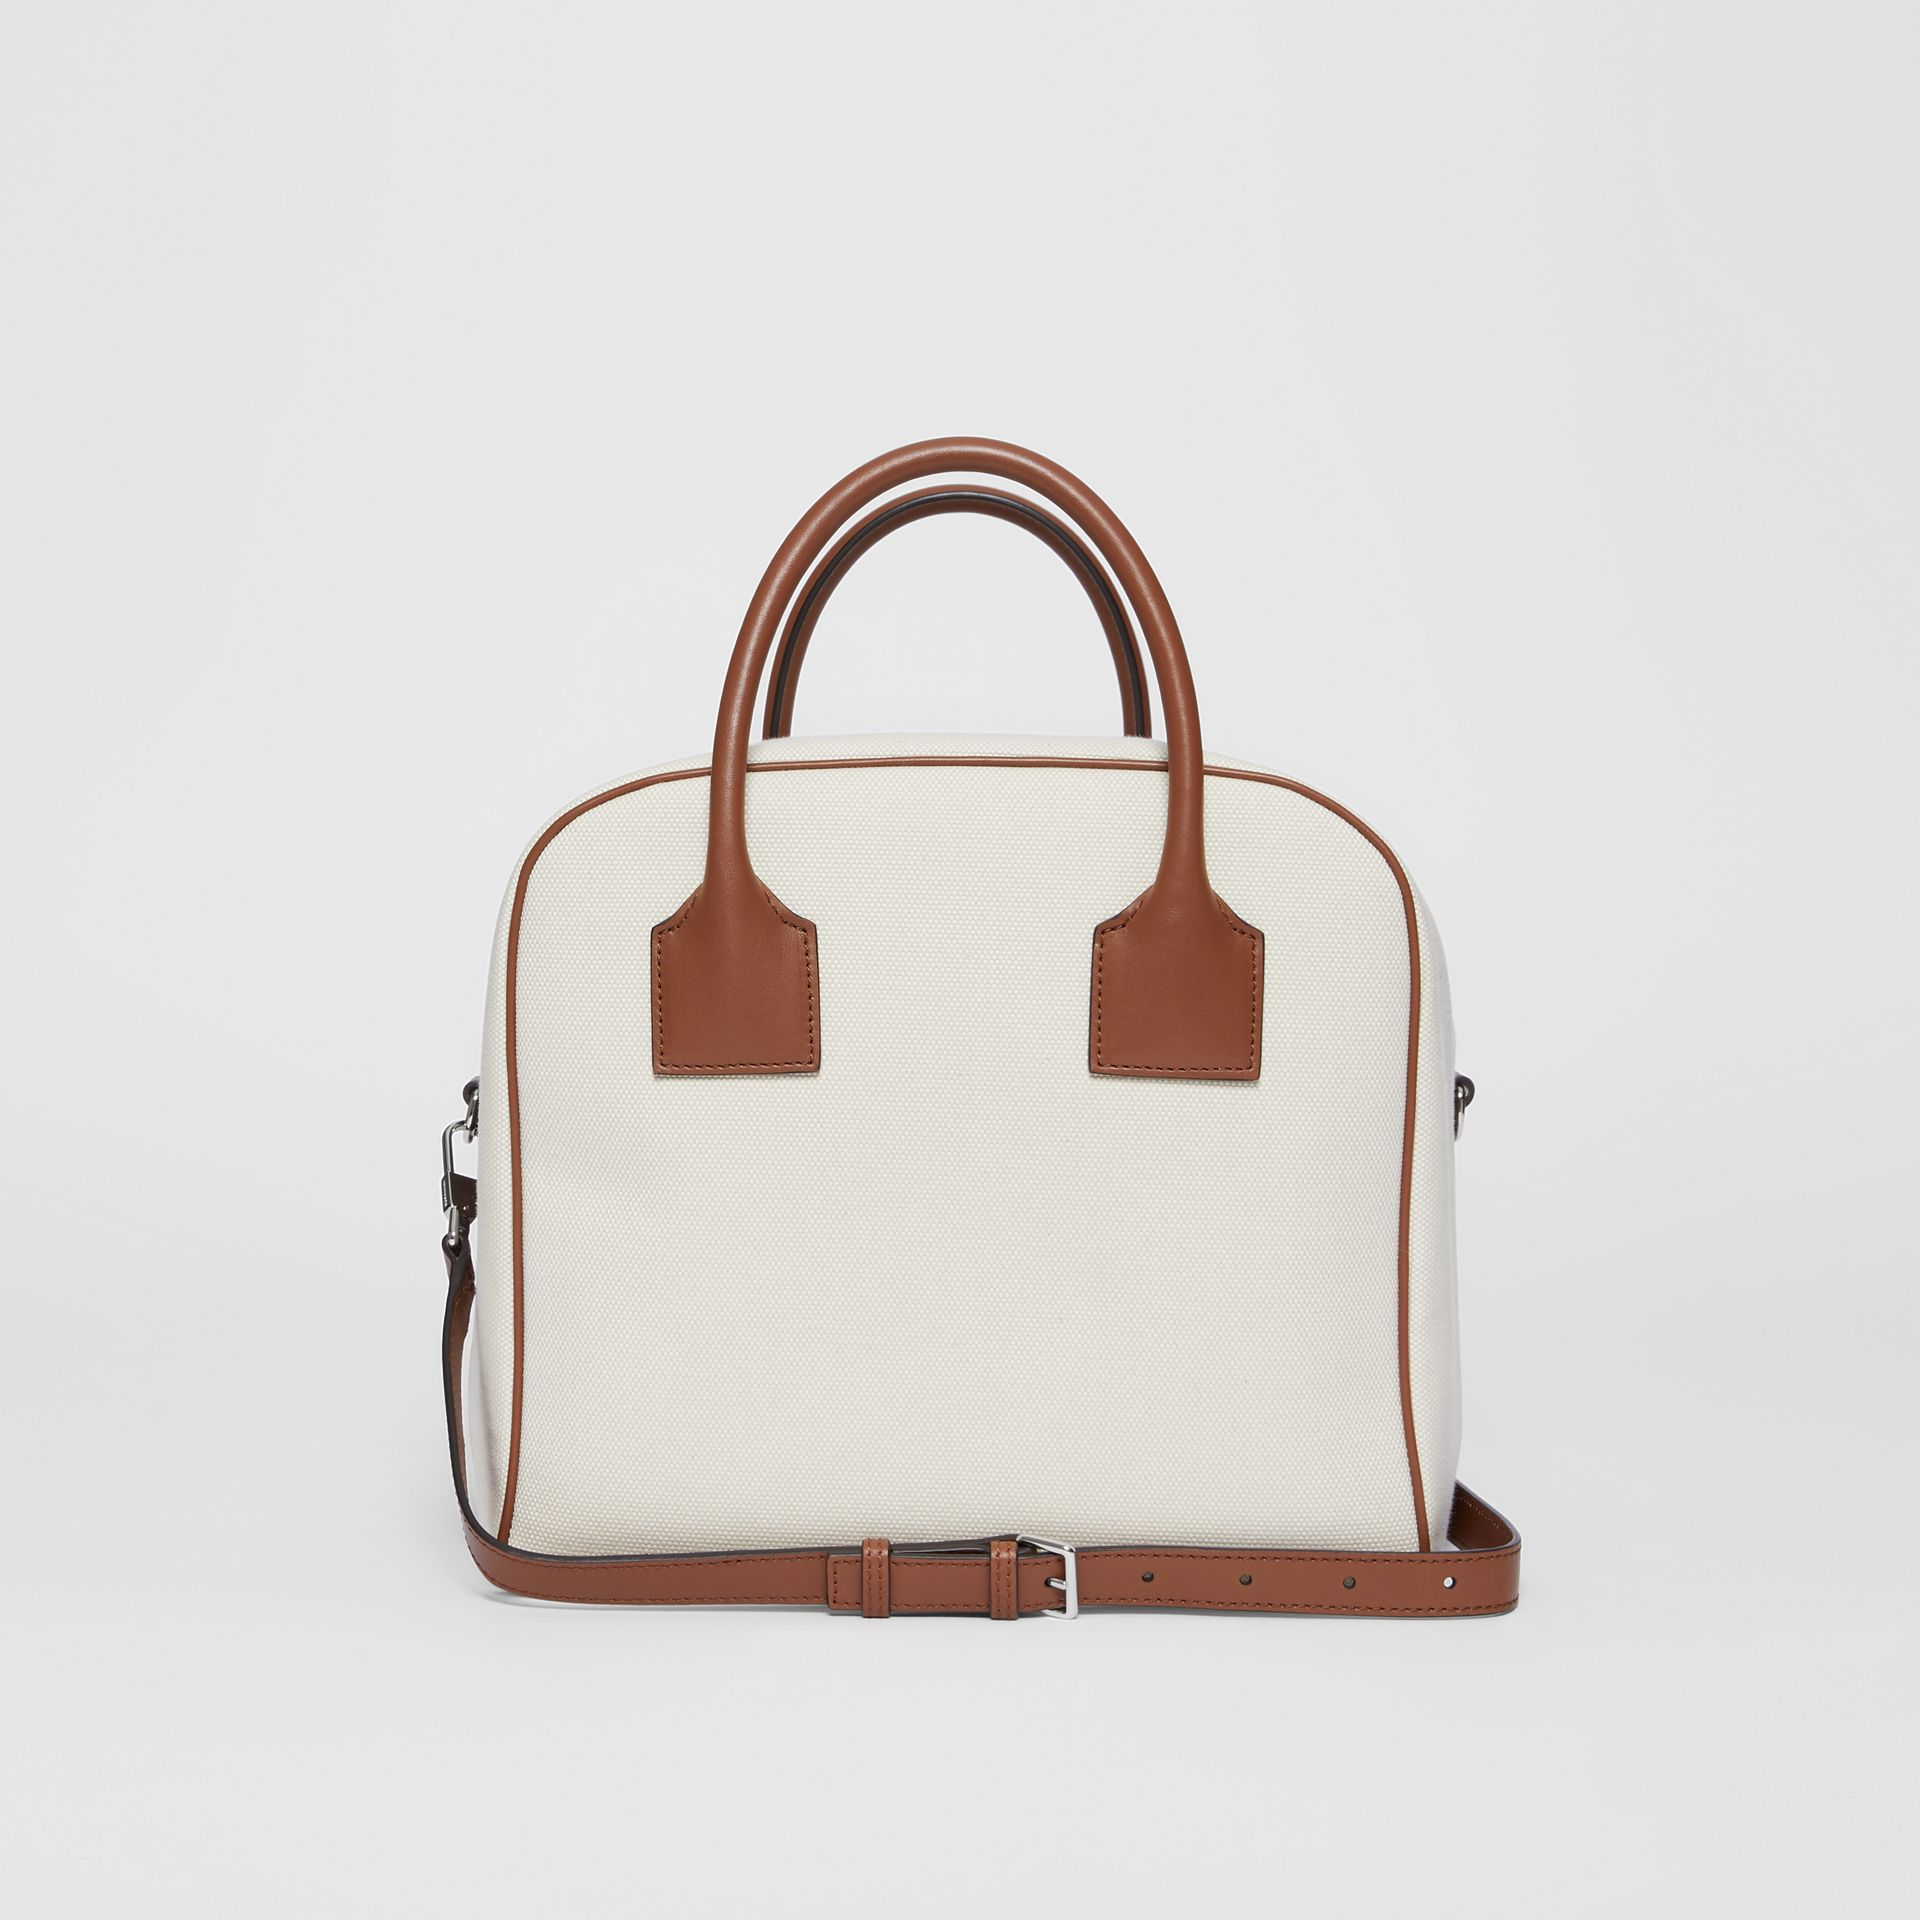 Medium Horseferry Print Canvas Cube Bag in Natural/malt Brown - Women | Burberry Australia - gallery image 8